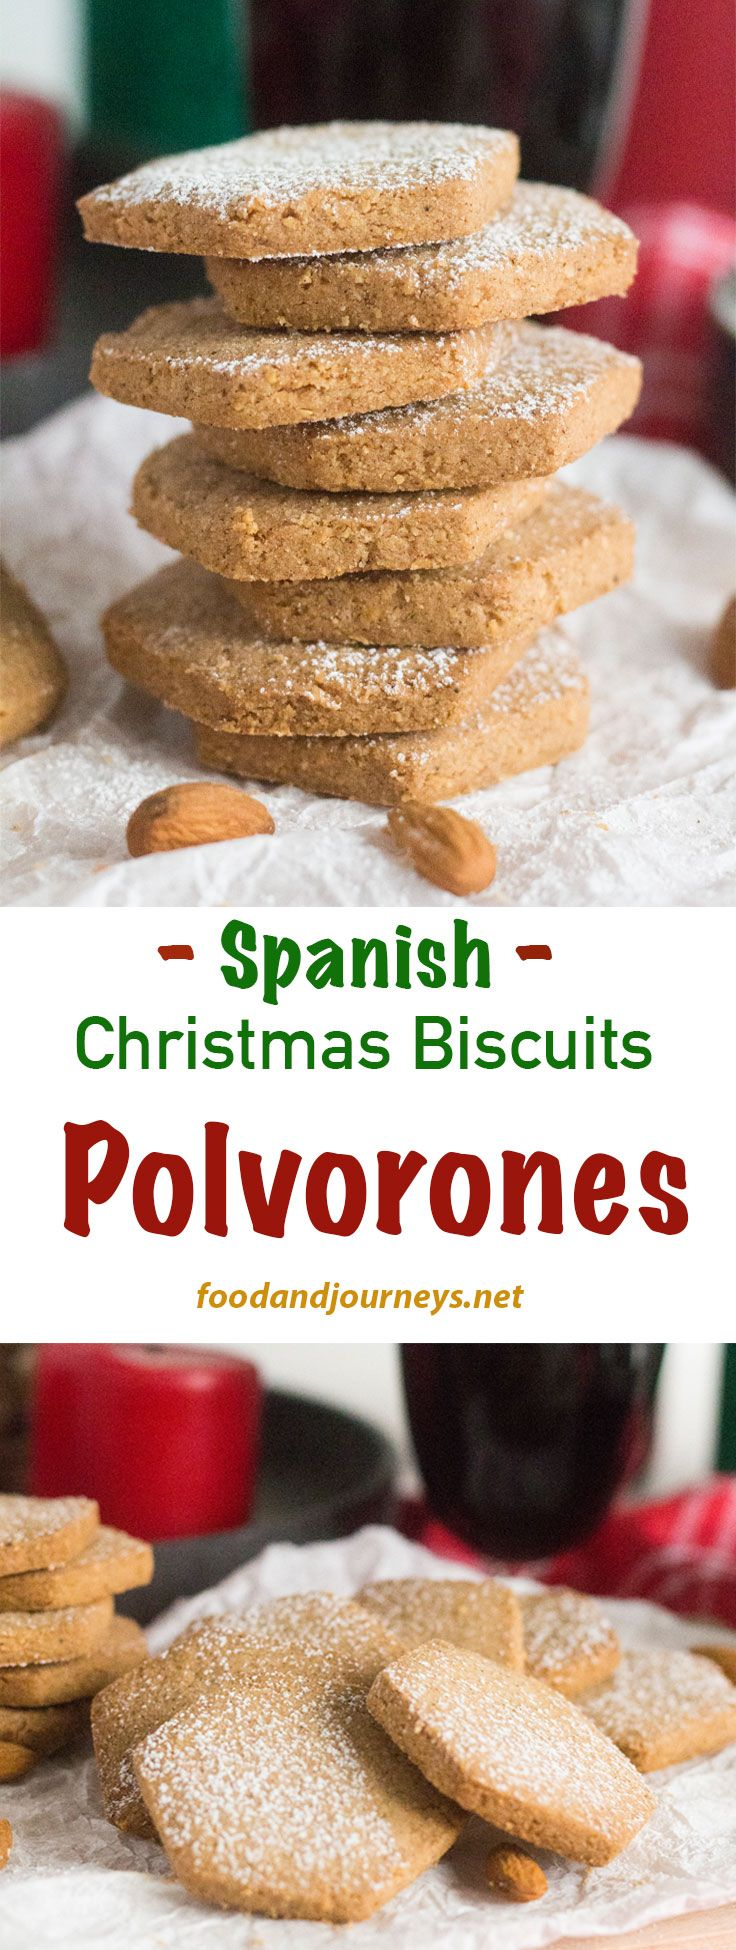 Spanish Recipes | Christmas dessert | Biscuits | Cookies. This traditional holiday treat is also commonly given as gifts! A hint of toasted almonds and cinnamon in every bite, Spanish Polvorones are quick and easy to make!  You might end up making them all year round!